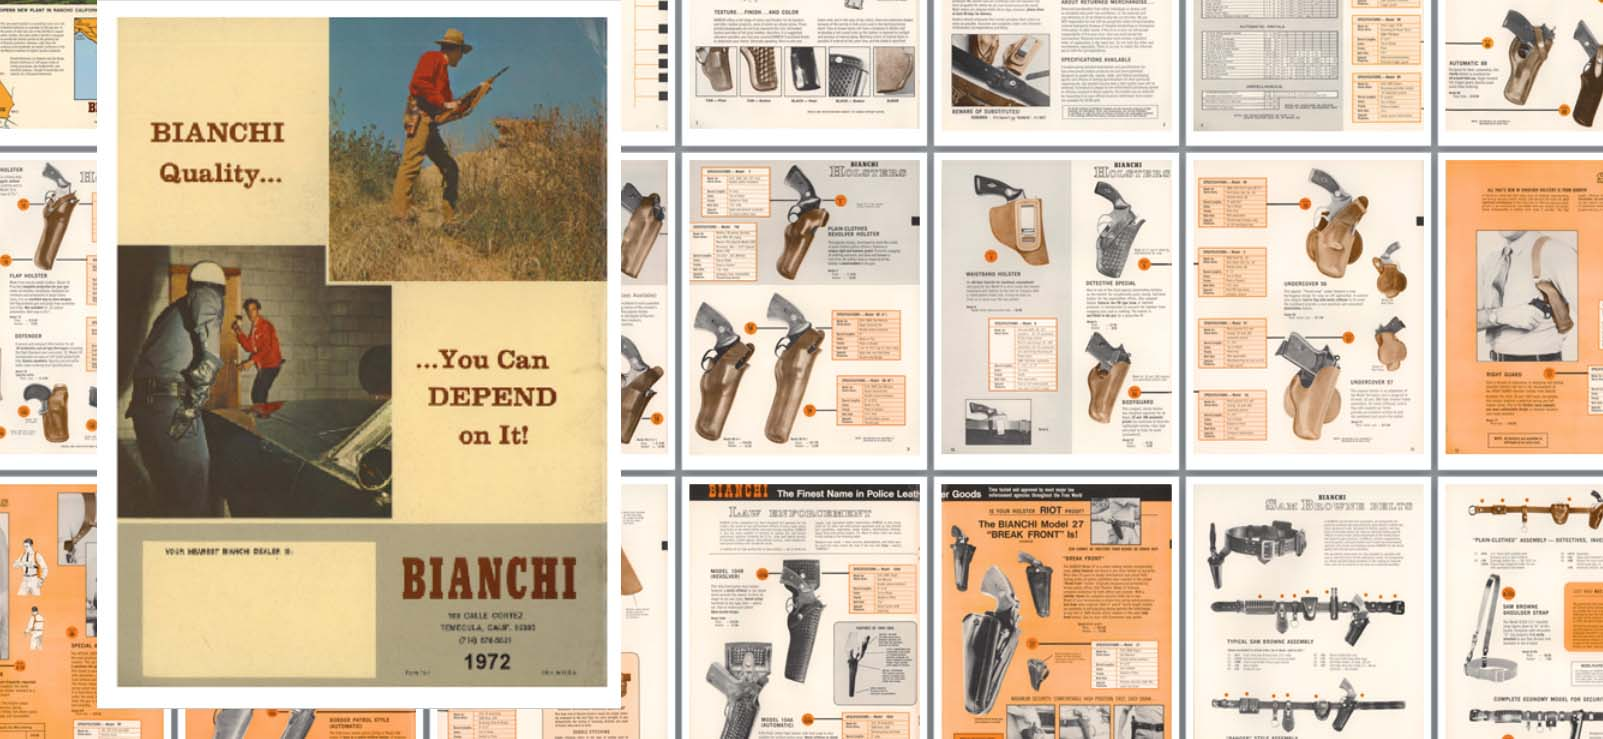 Bianchi 1972 Leather Products